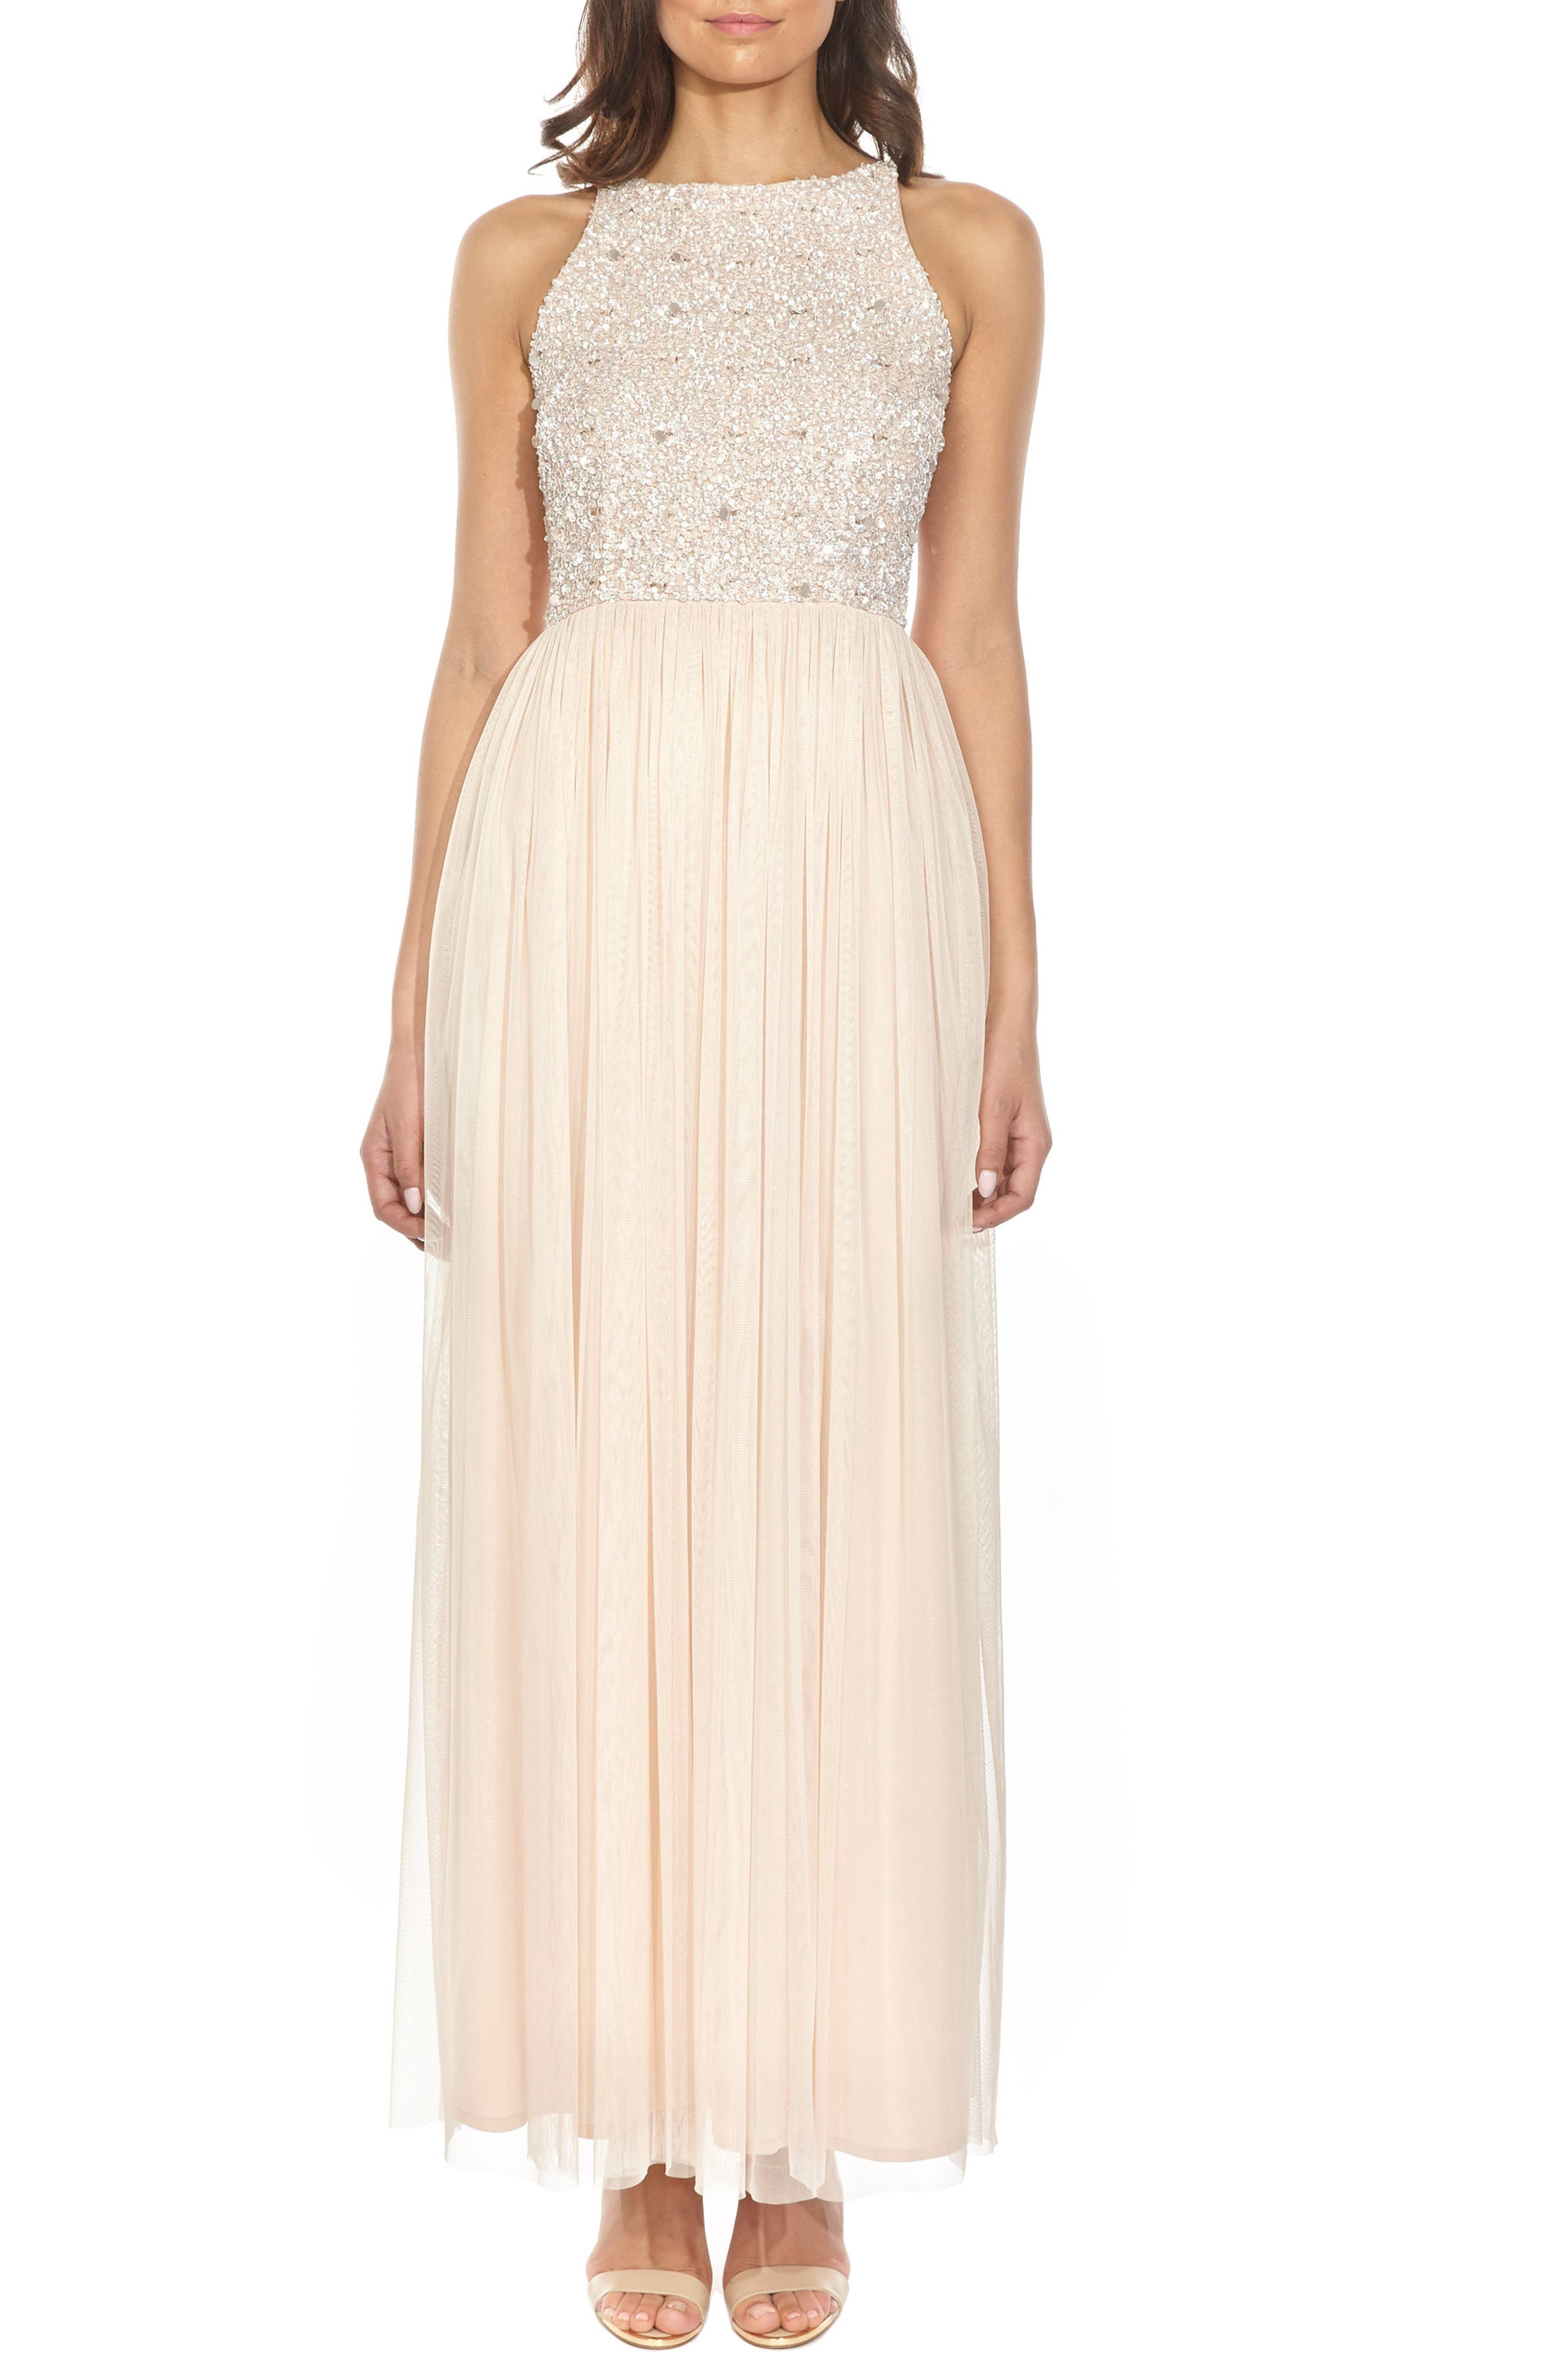 Lace & Beads Picasso Embellished Bodice Evening Dress, Beige